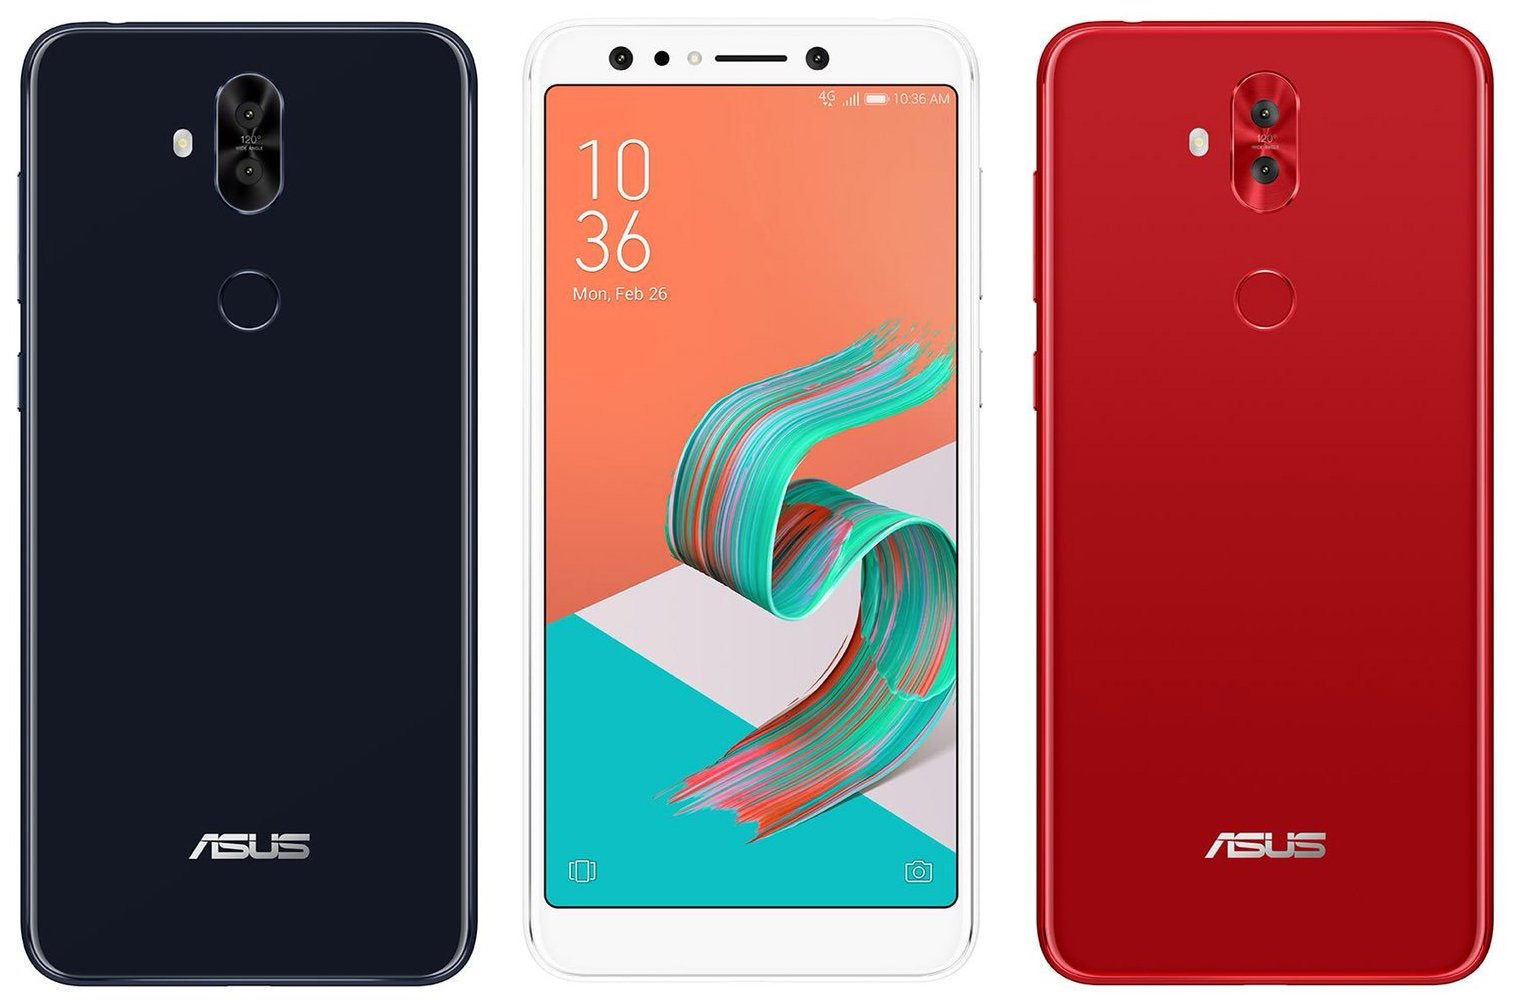 ASUS Zenfone 5 Lite Render Leaks Ahead of Launch – Gadget